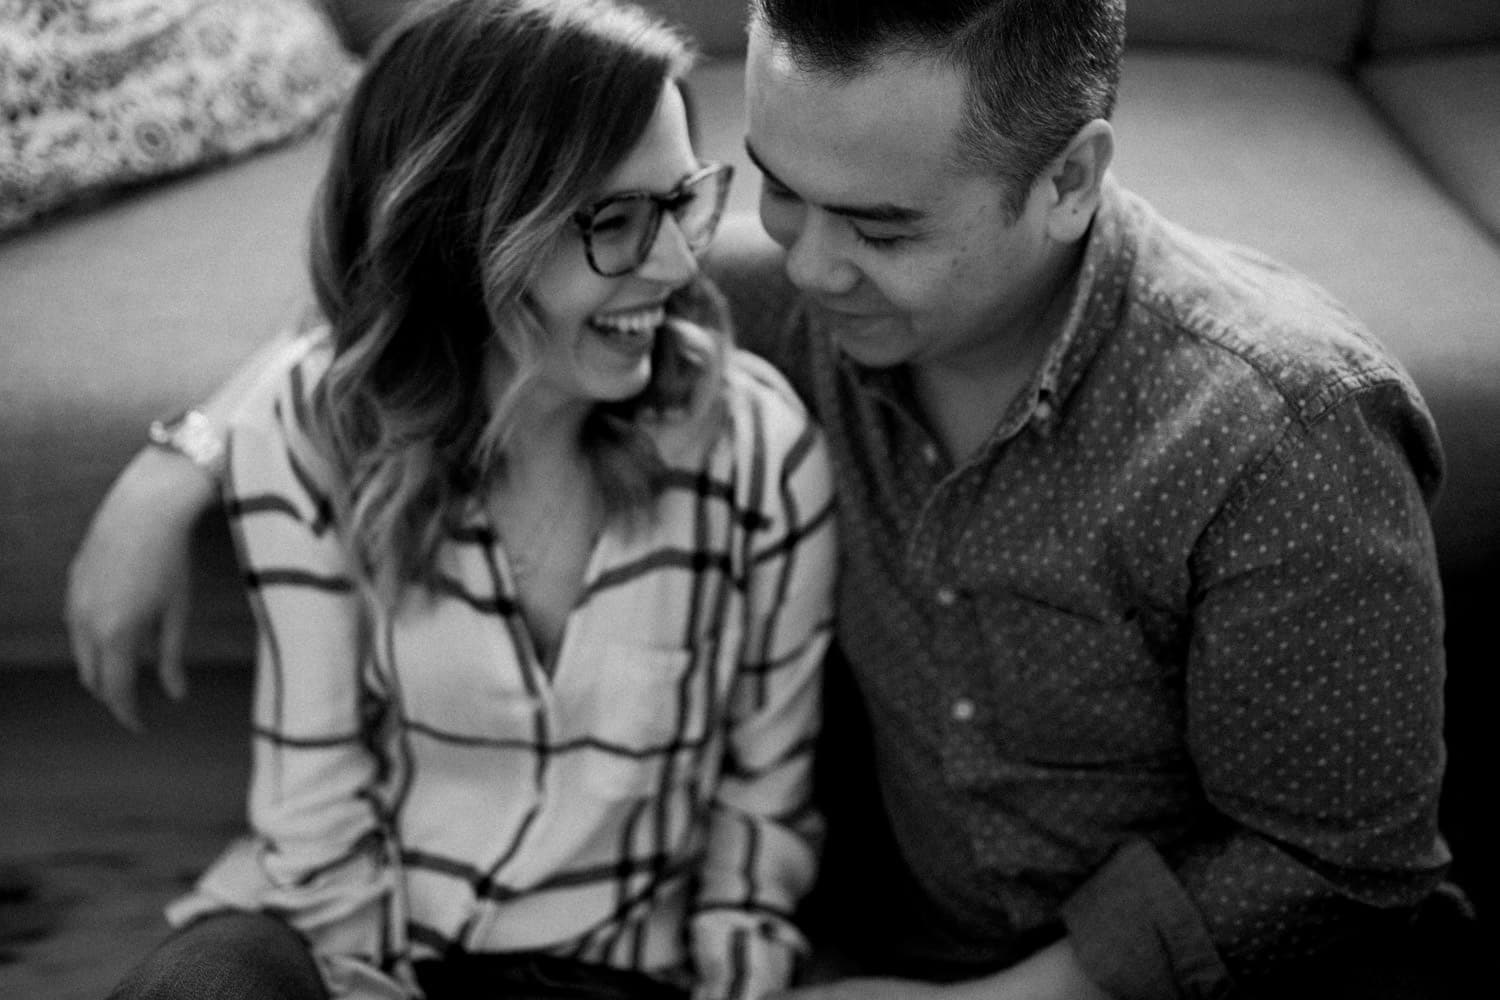 couple laugh together in living room - ottawa winter engagement photos